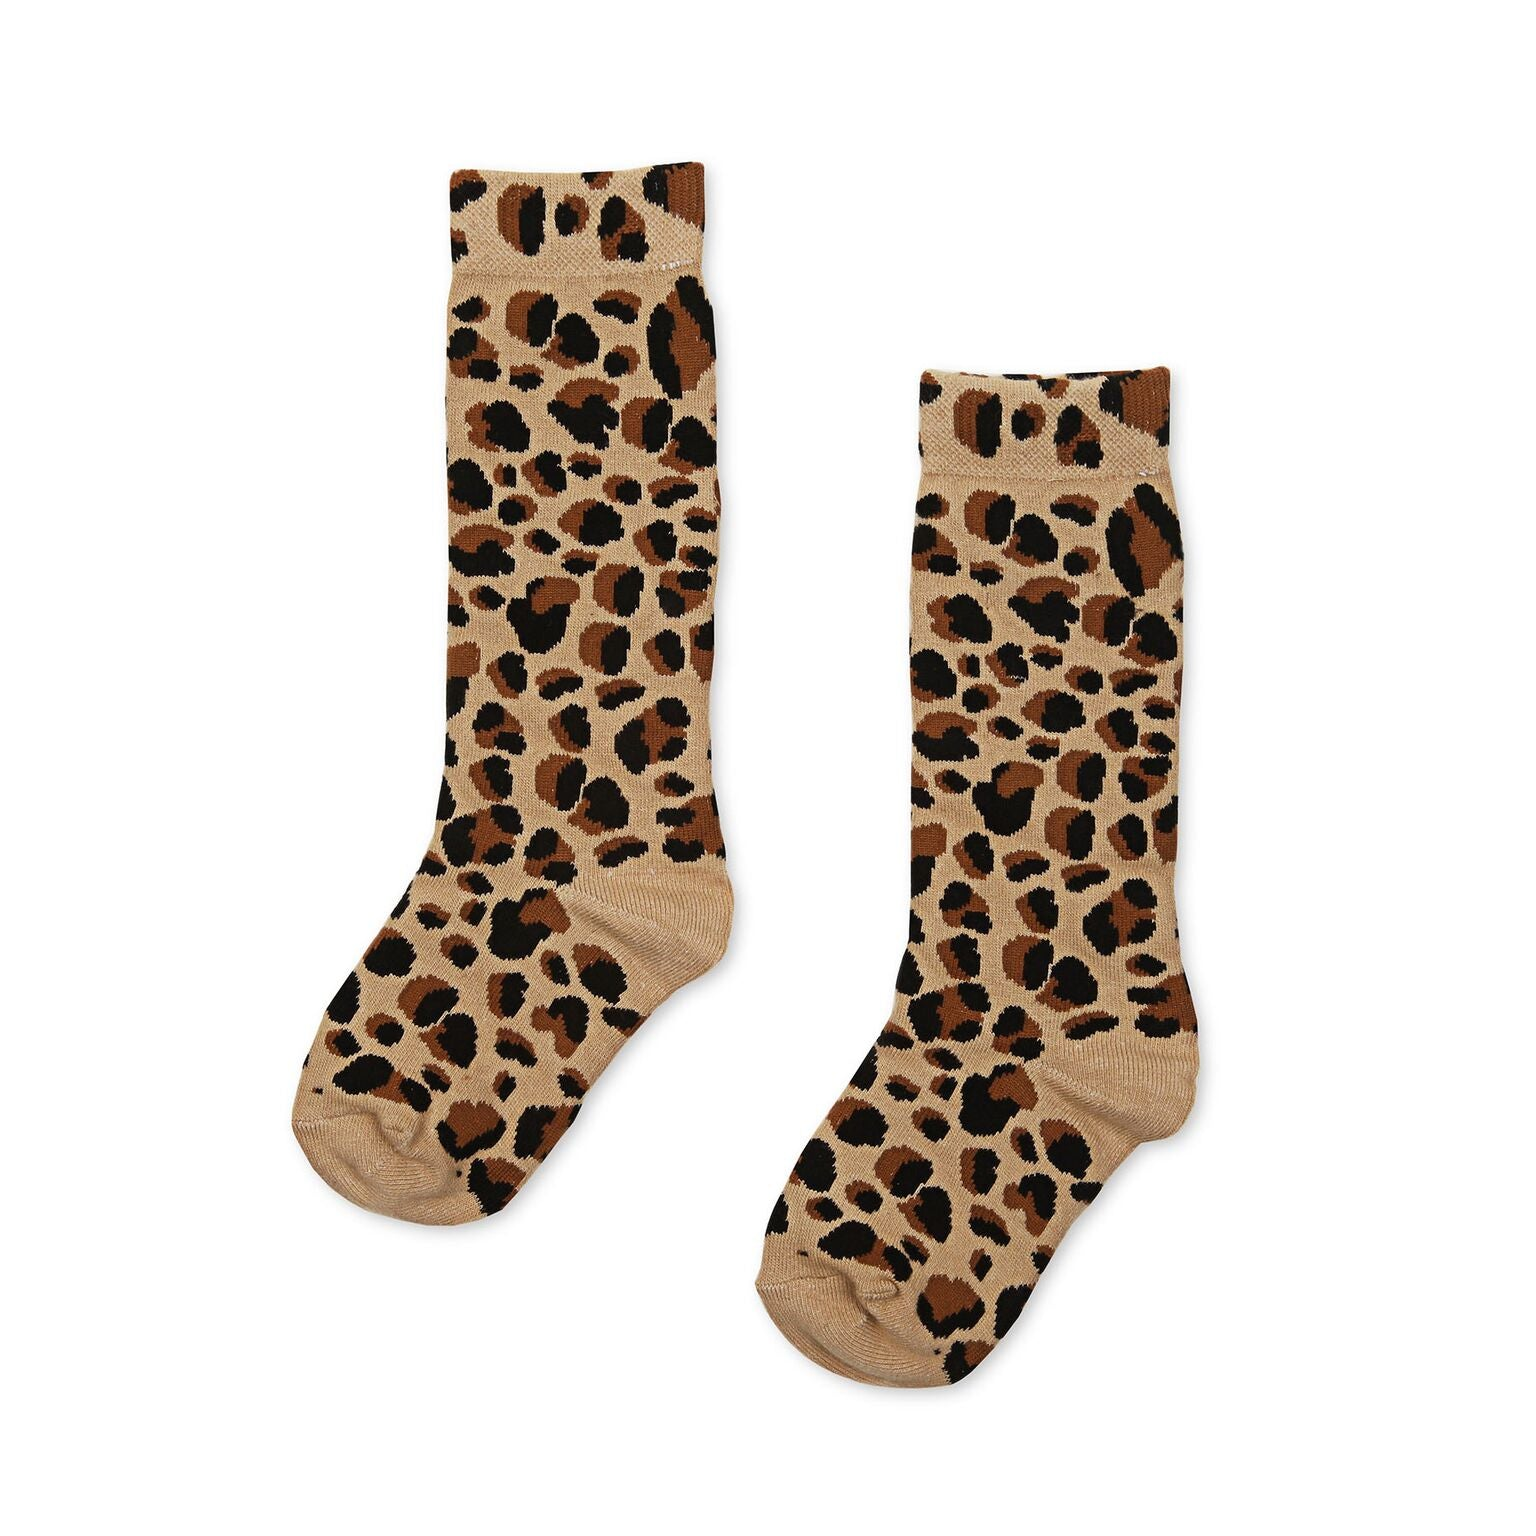 Kapow Leopard Print Knee High Socks Beige